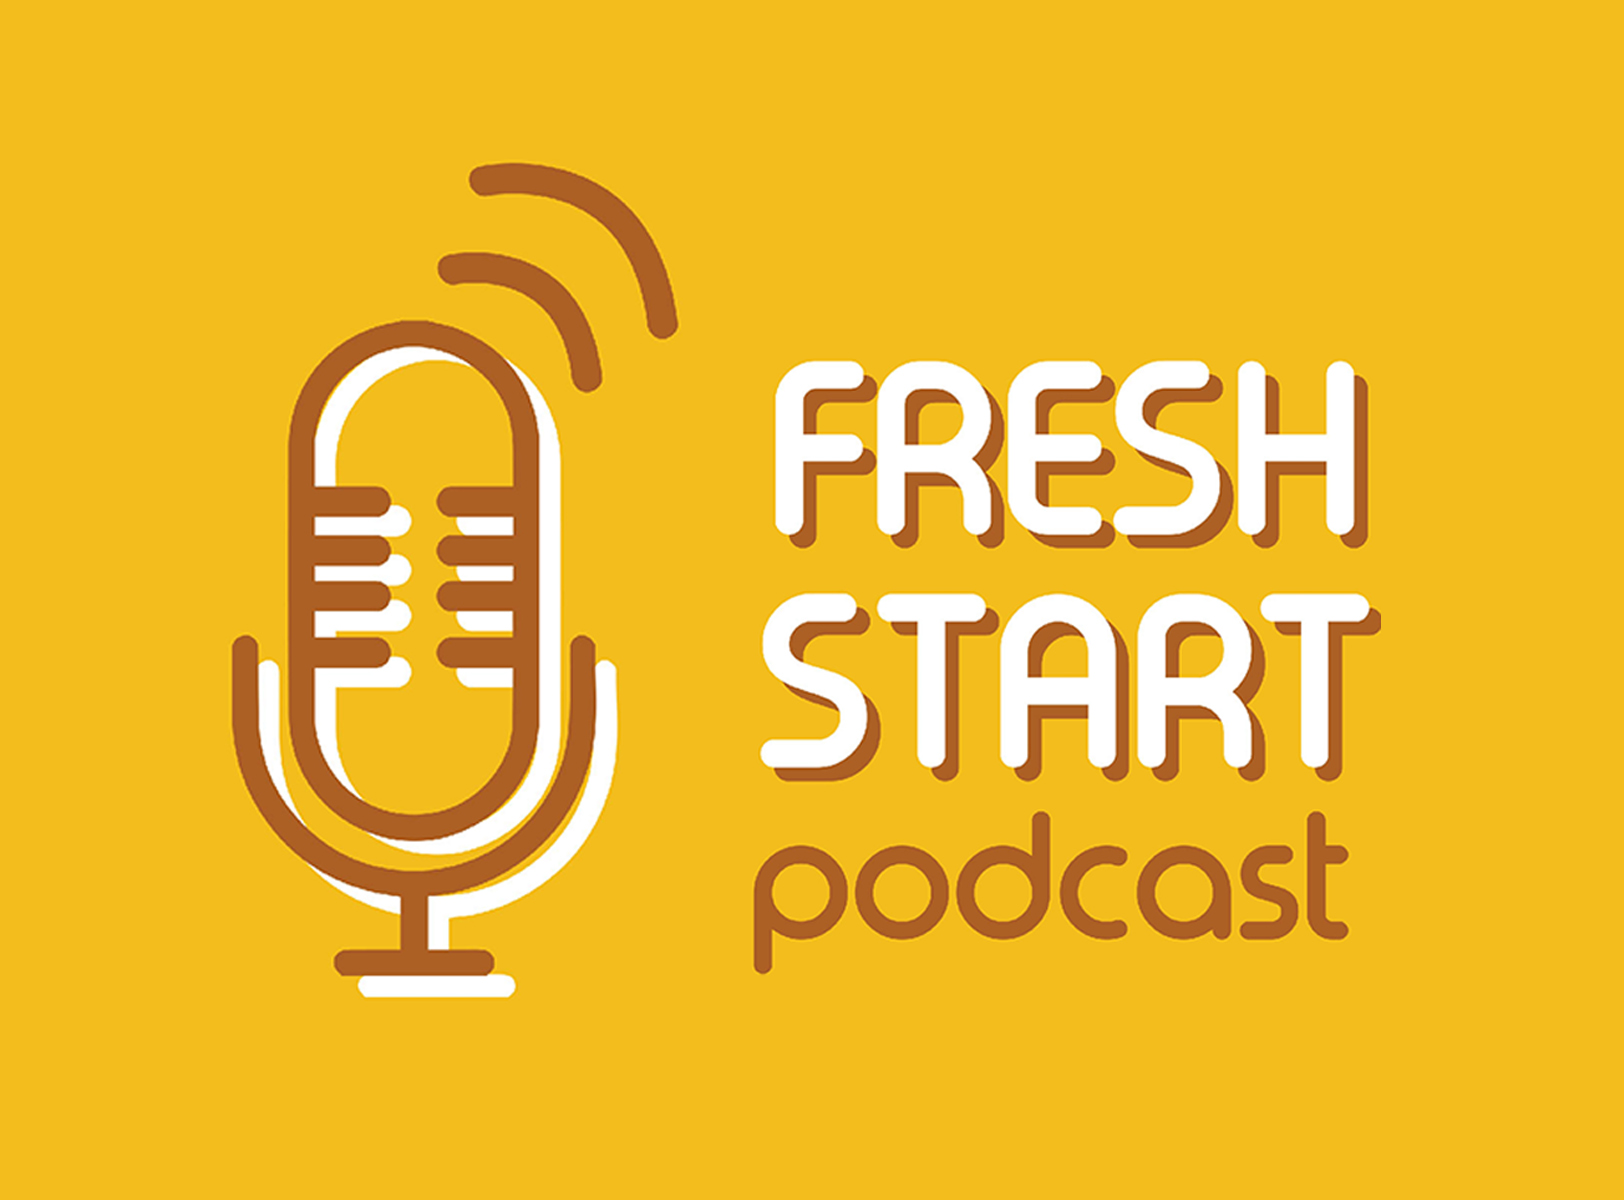 Fresh Start: Podcast News (5/14/2020 Thu.)